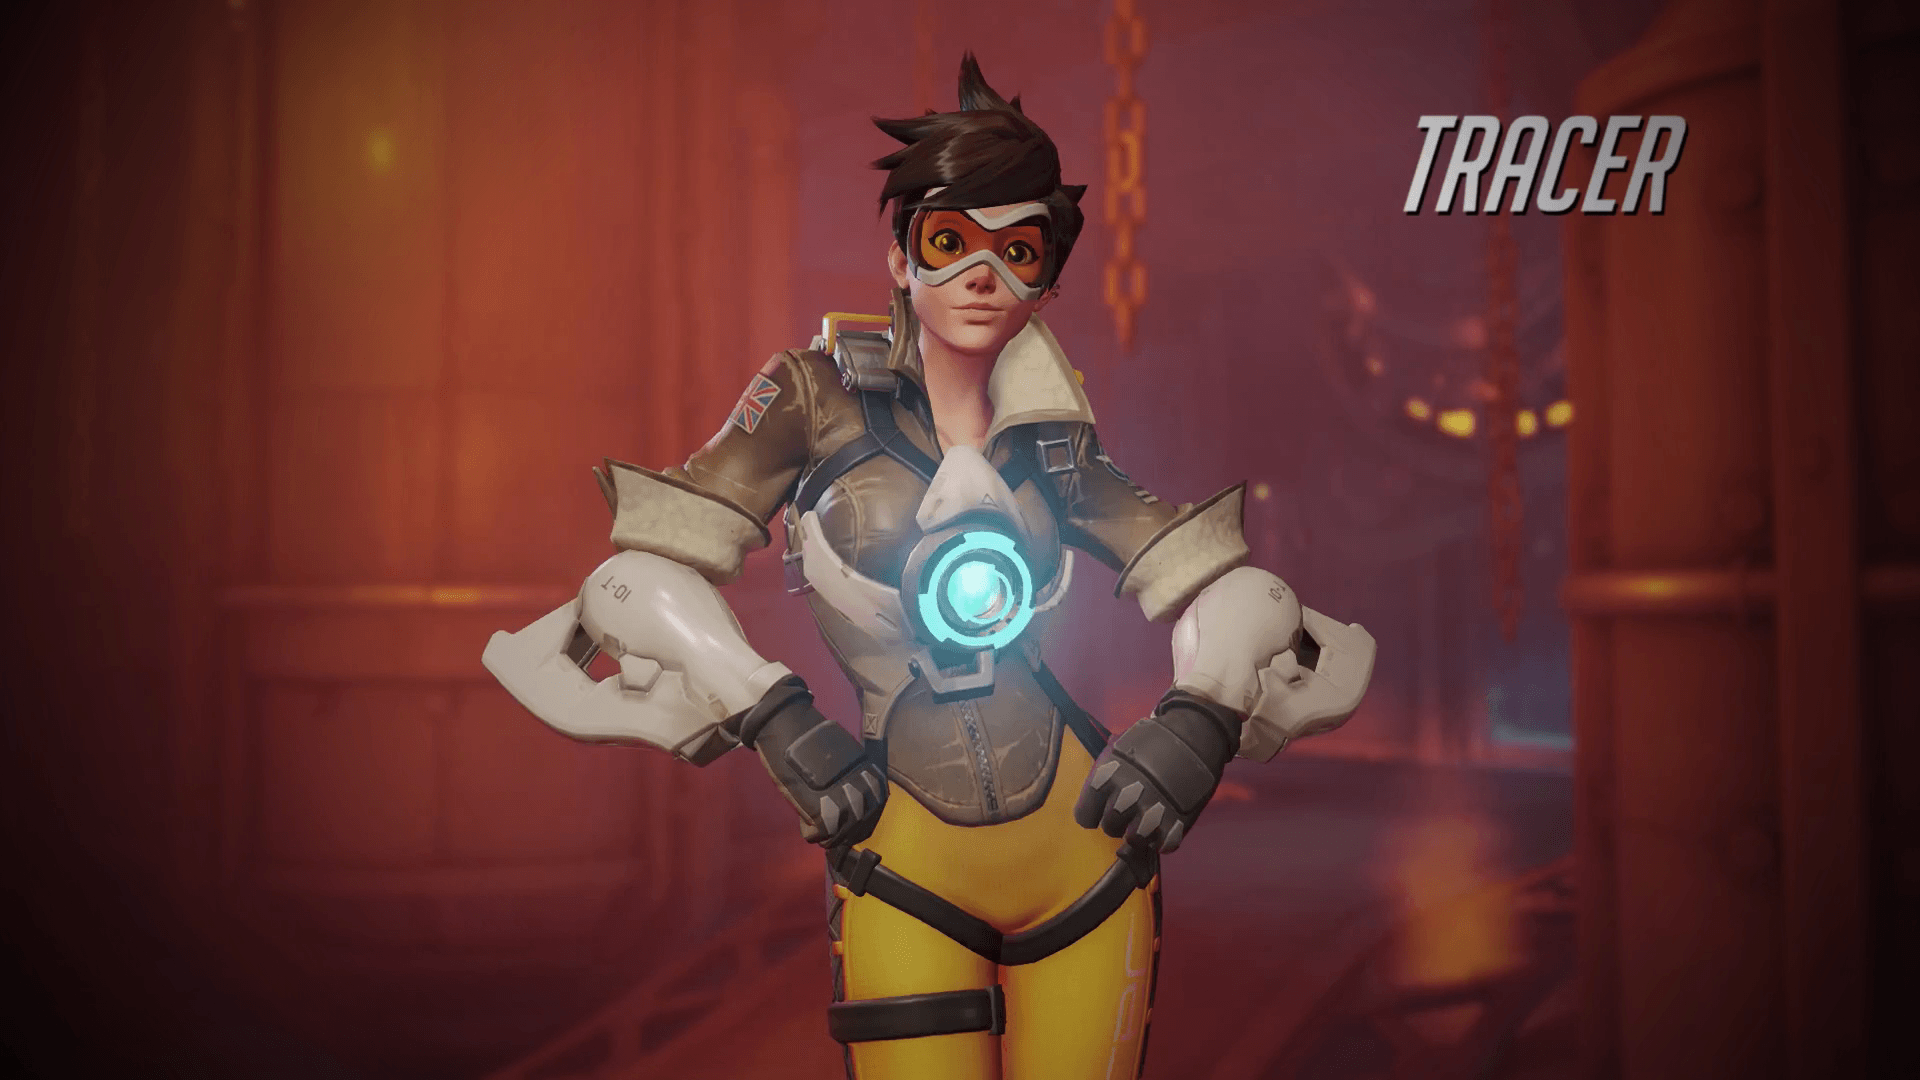 Tracer Wallpapers Wallpaper Cave